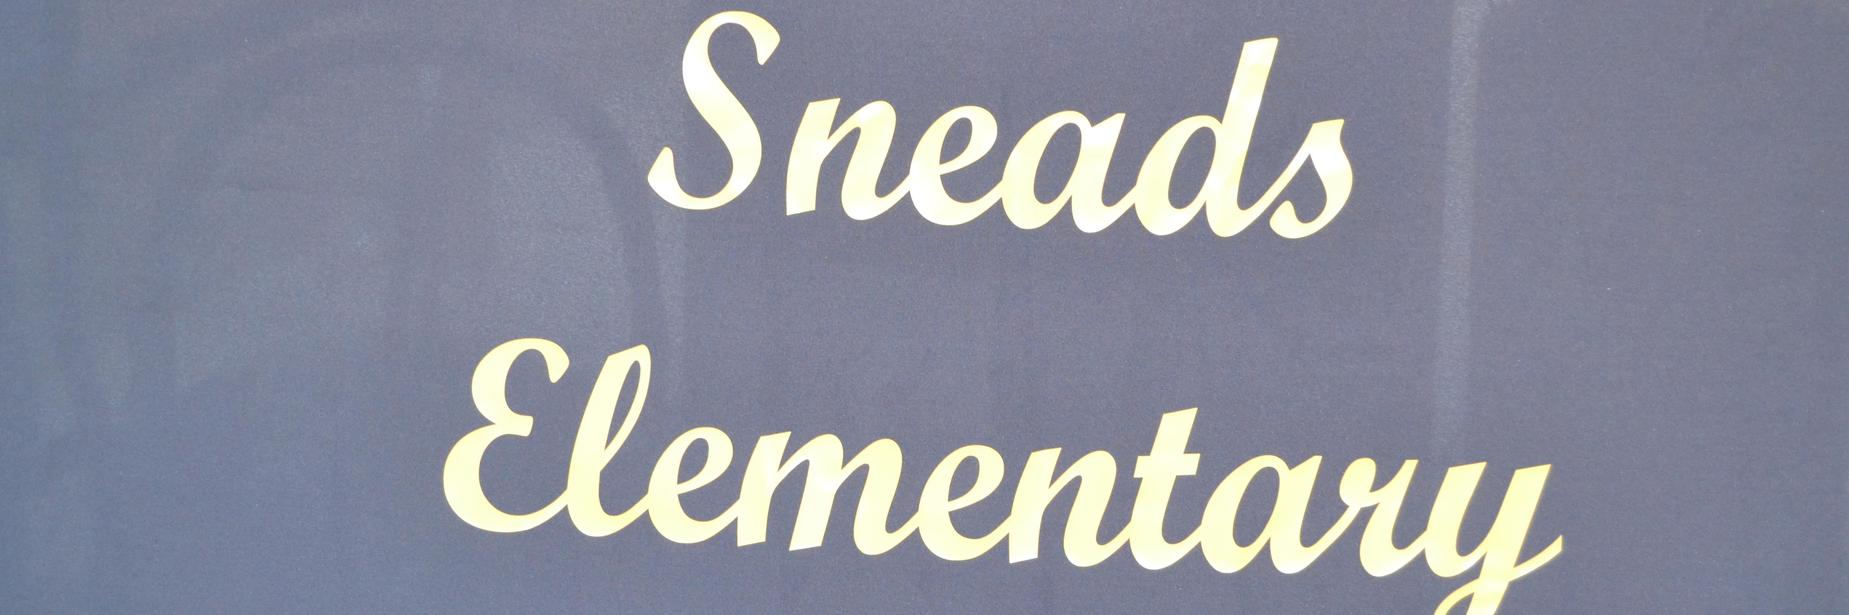 Sneads Elementary